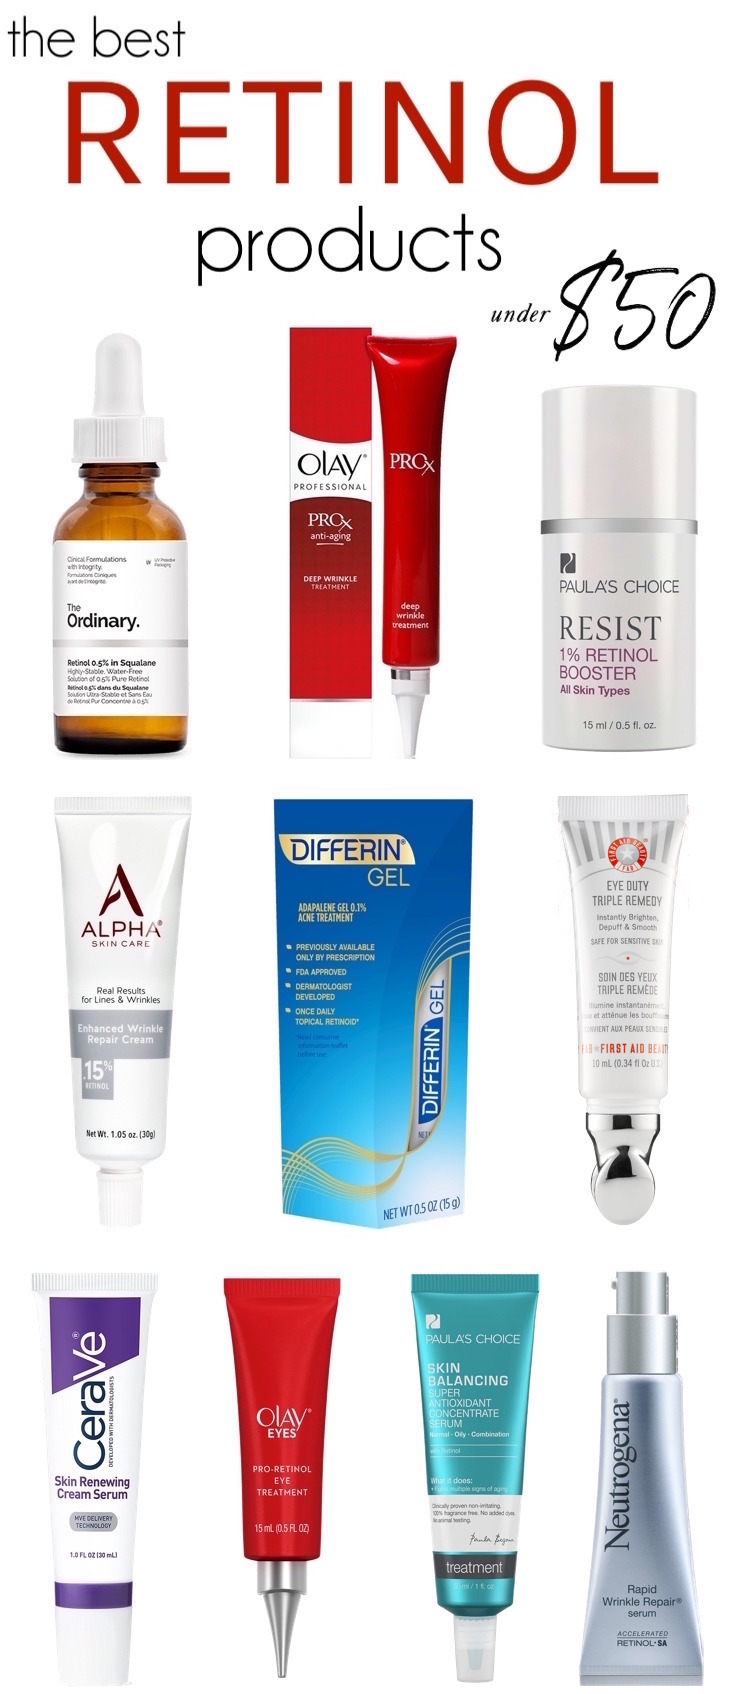 The Best Retinol Serums and Creams under $  50 | These affordable yet hard-working heroes treat dark spots, wrinkles, acne, sun damage and large pores while being gentle on your skin!